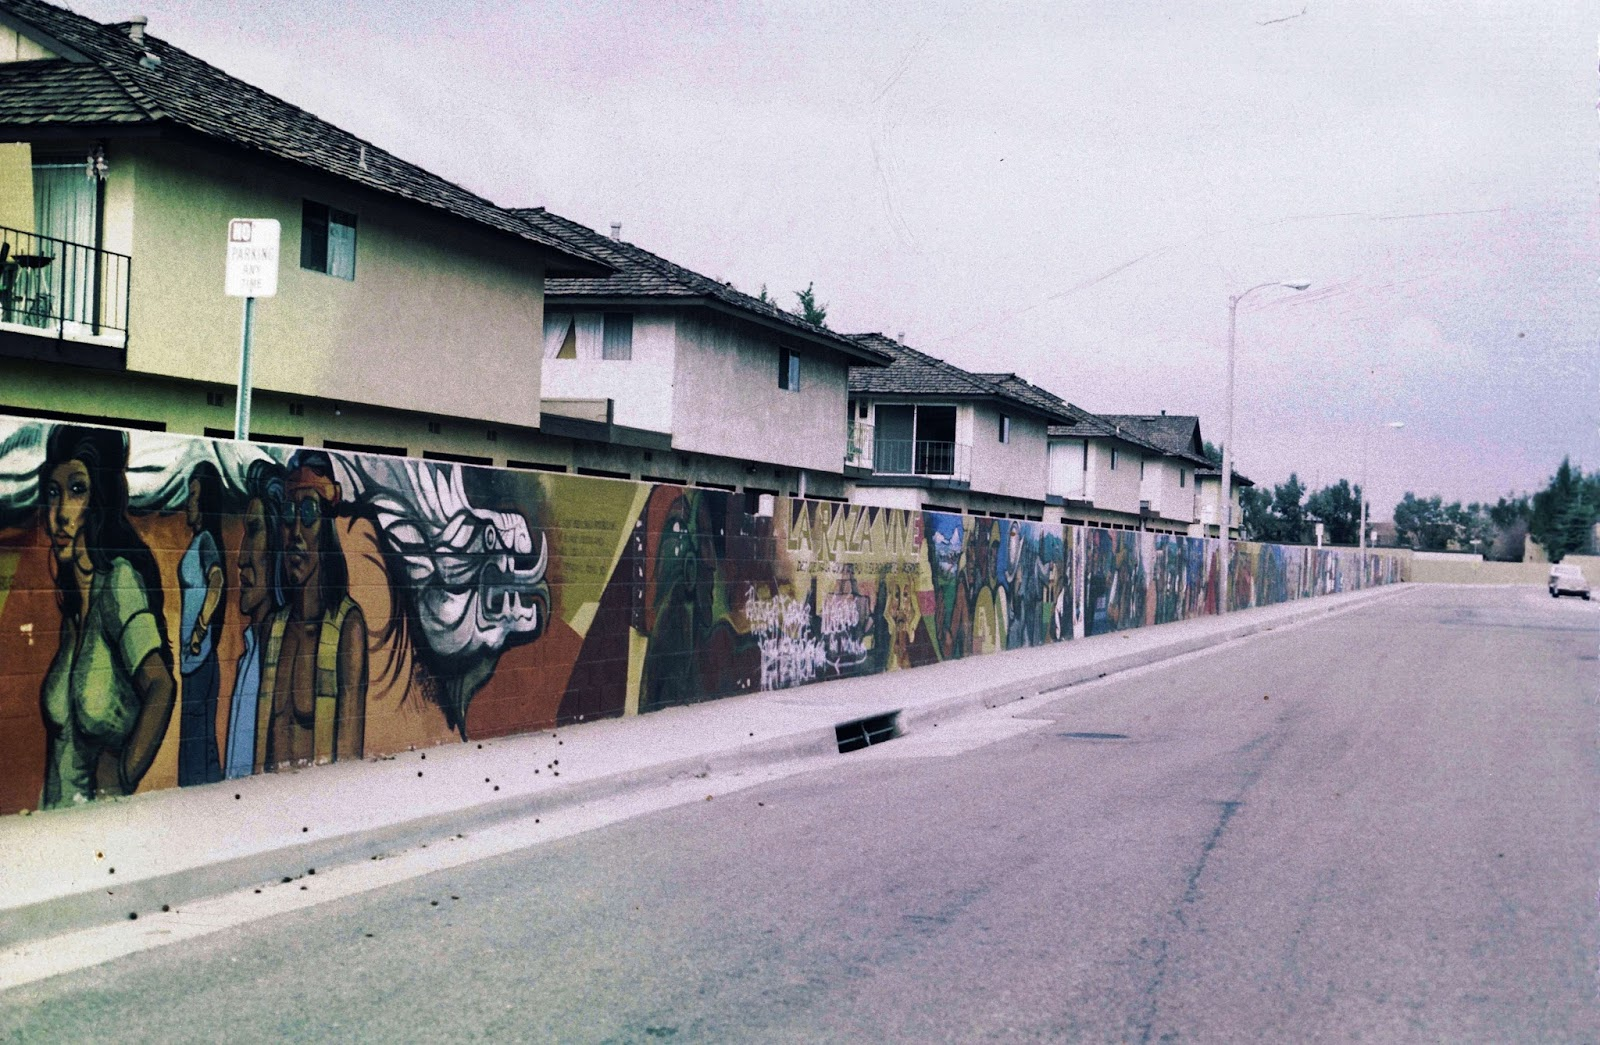 Sergio O'Cadiz's mural (1975) was starved of resources after Fountain Valley officials who had commissioned it saw a panel showing police mistreating a Chicano youth. The mural was neglected, left to decay, and finally bulldozed by the city.